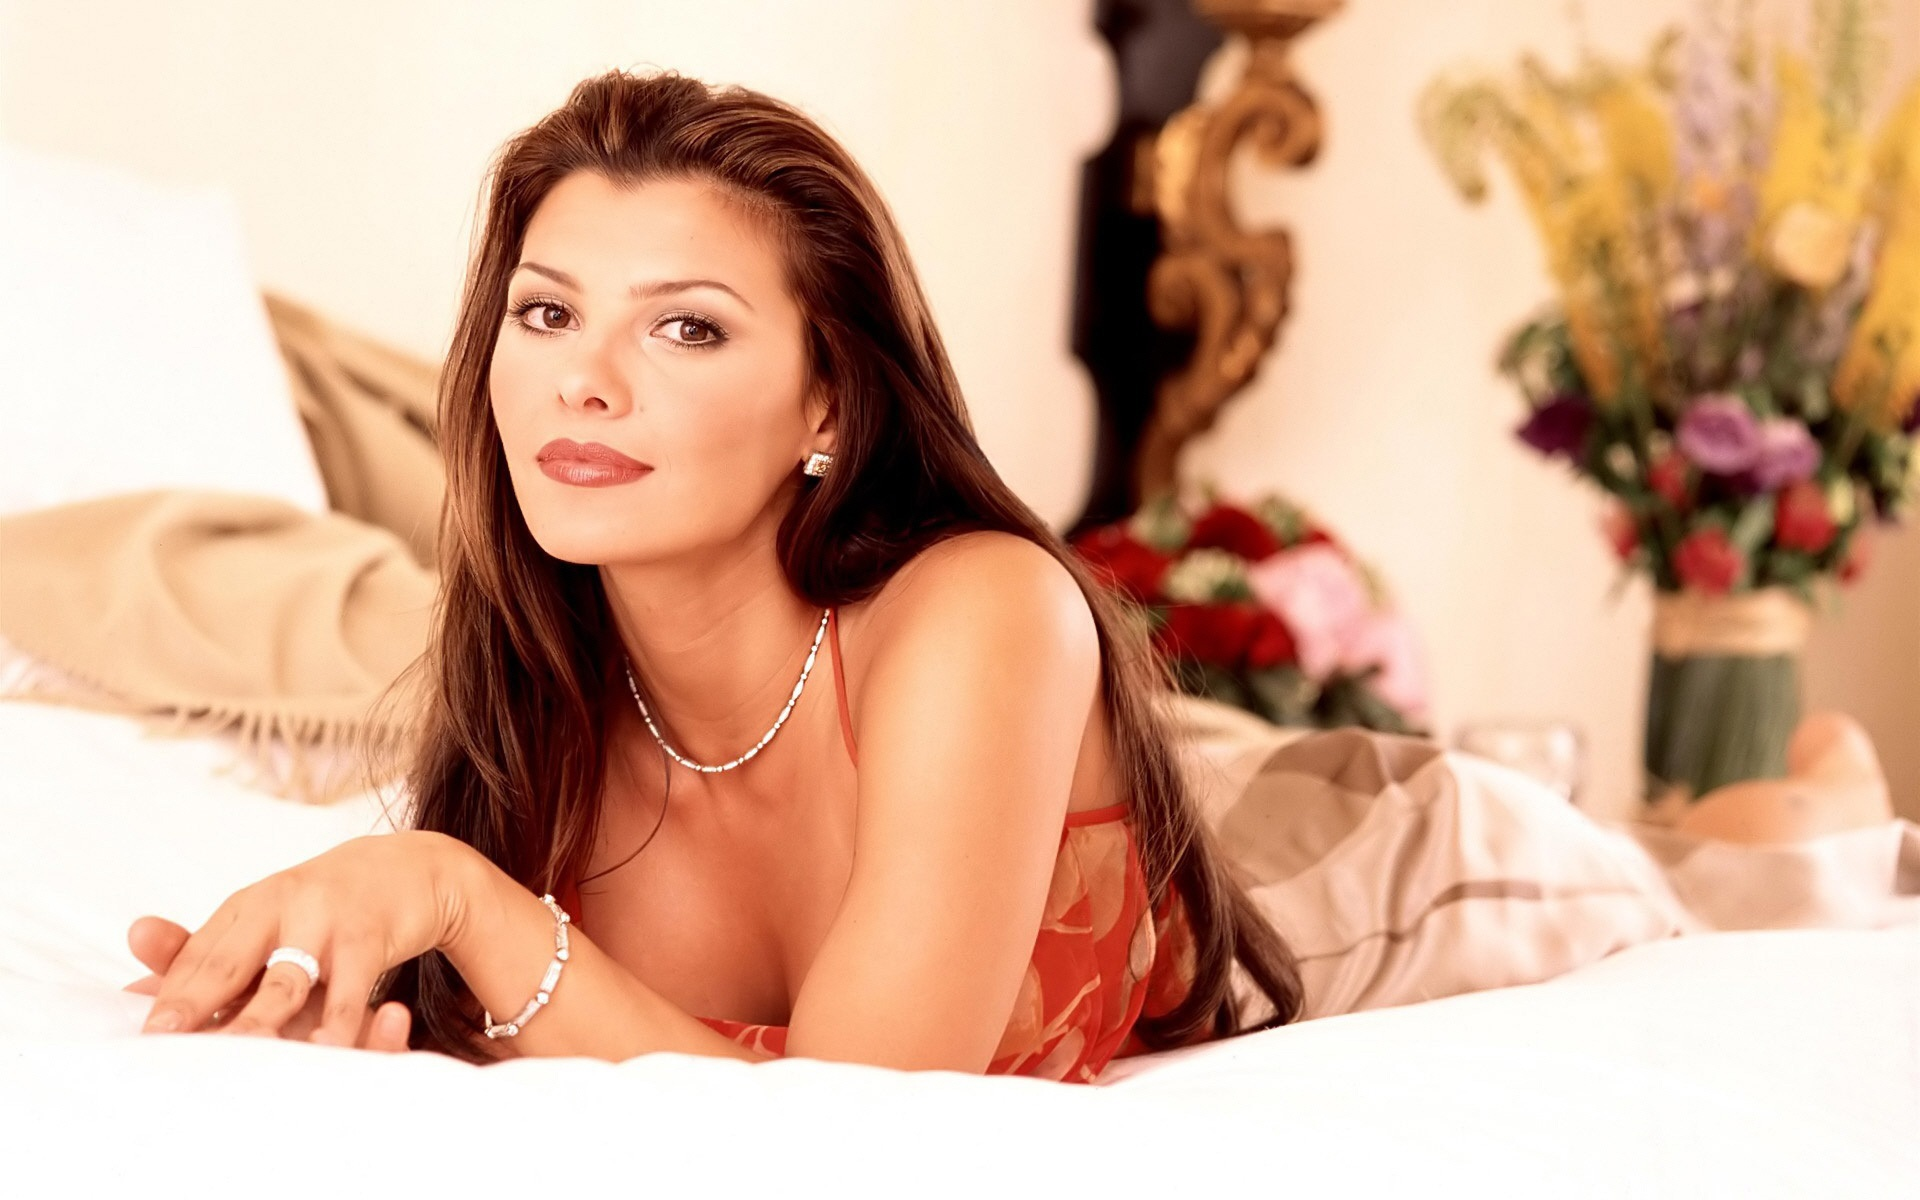 Ali landry car interior design - Ali Landry Wallpapers Images Photos Pictures Backgrounds